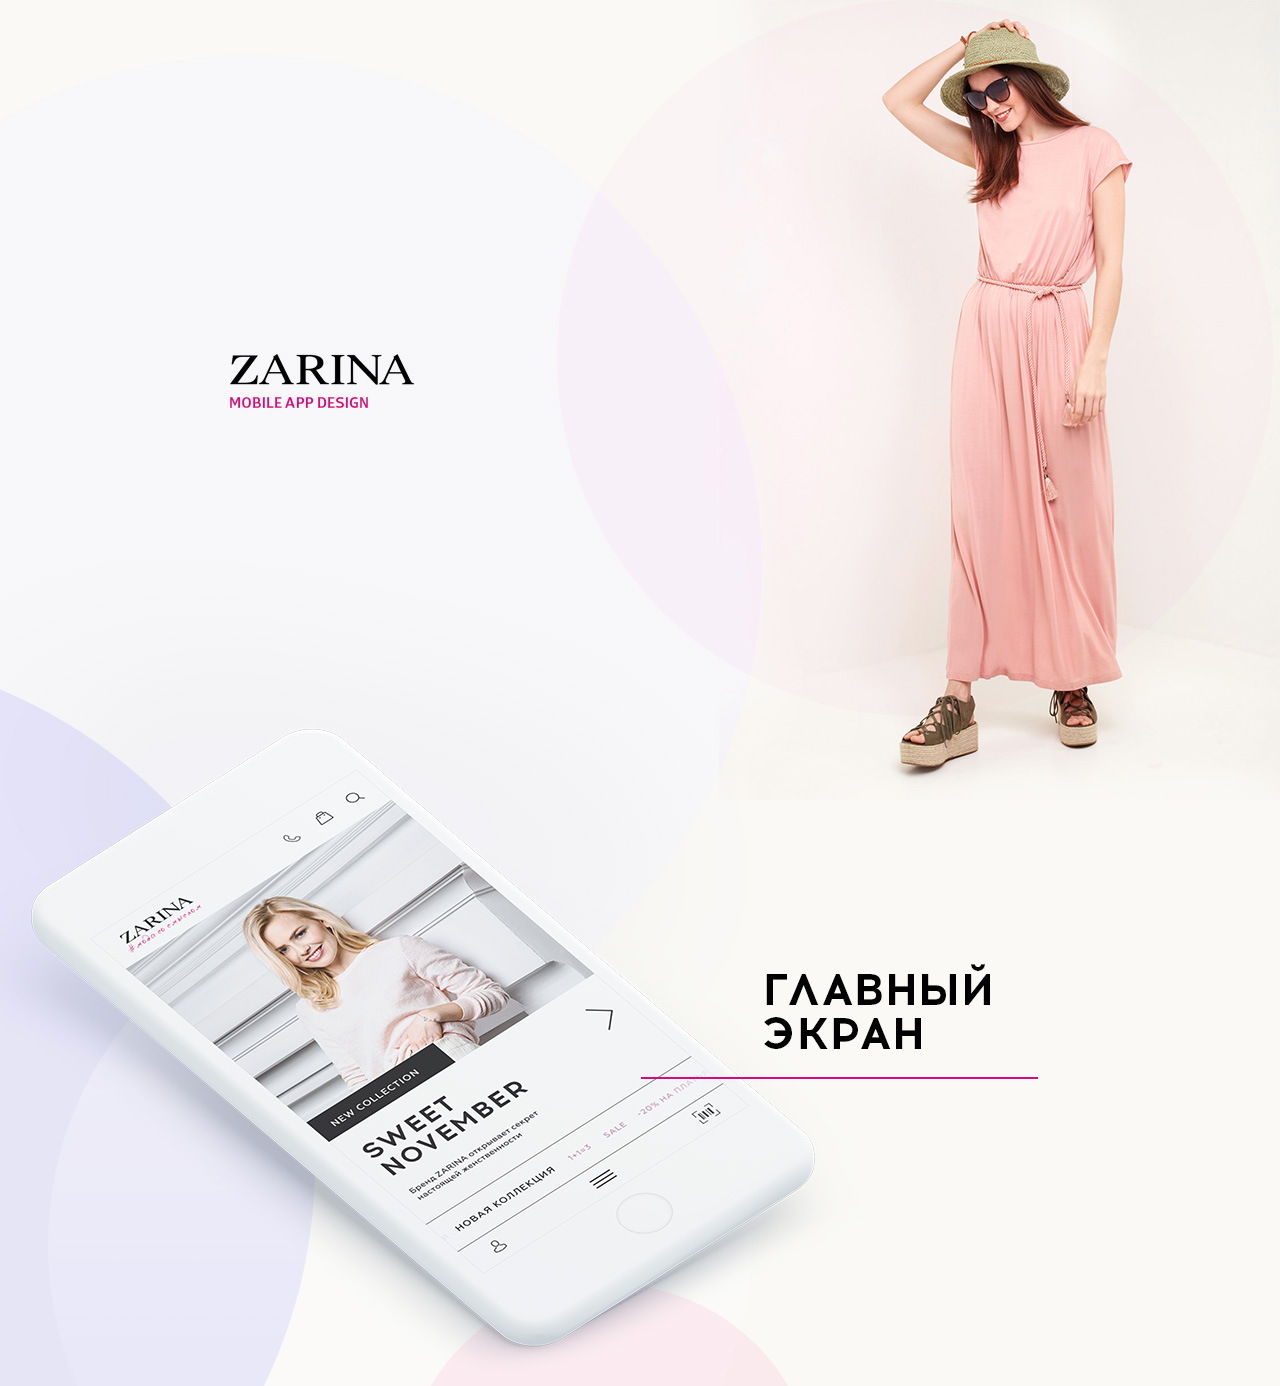 Zarina